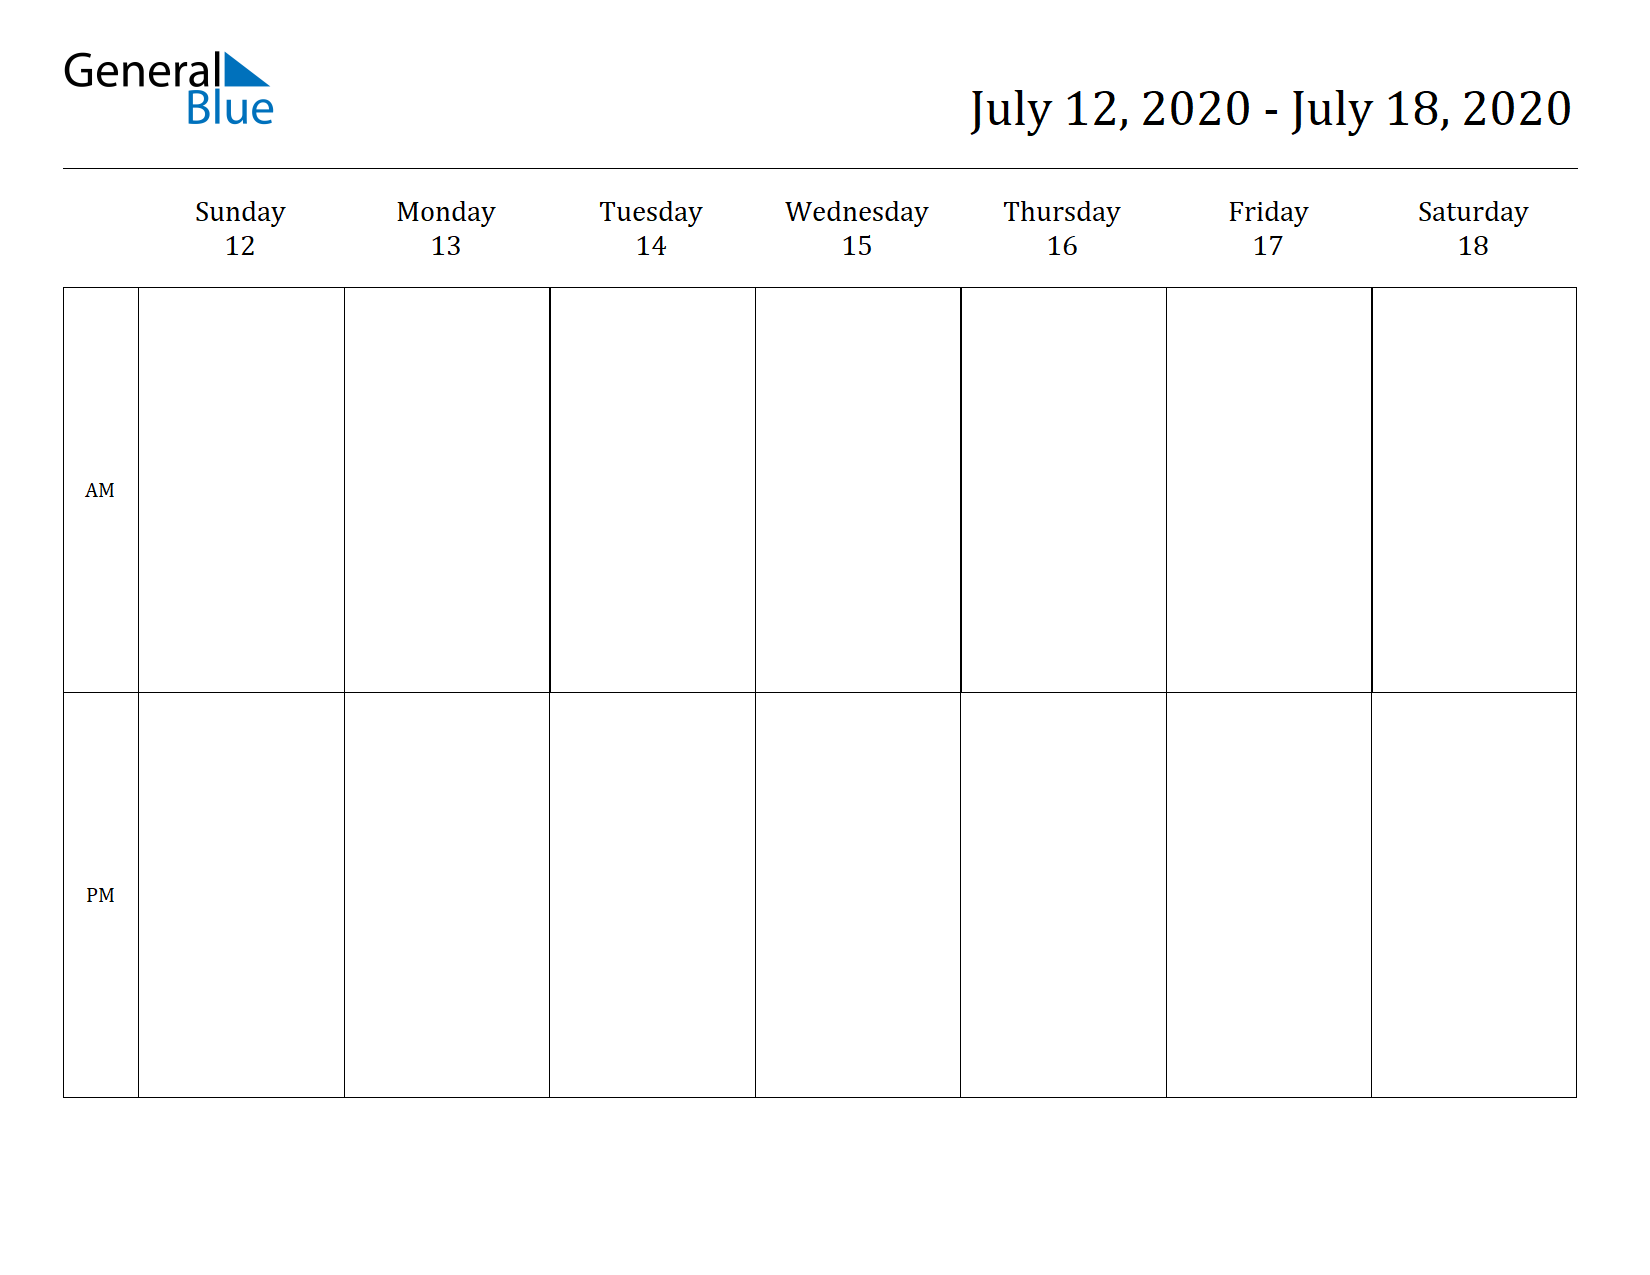 Weekly Calendar for Jul 12, 2020 to Jul 18, 2020